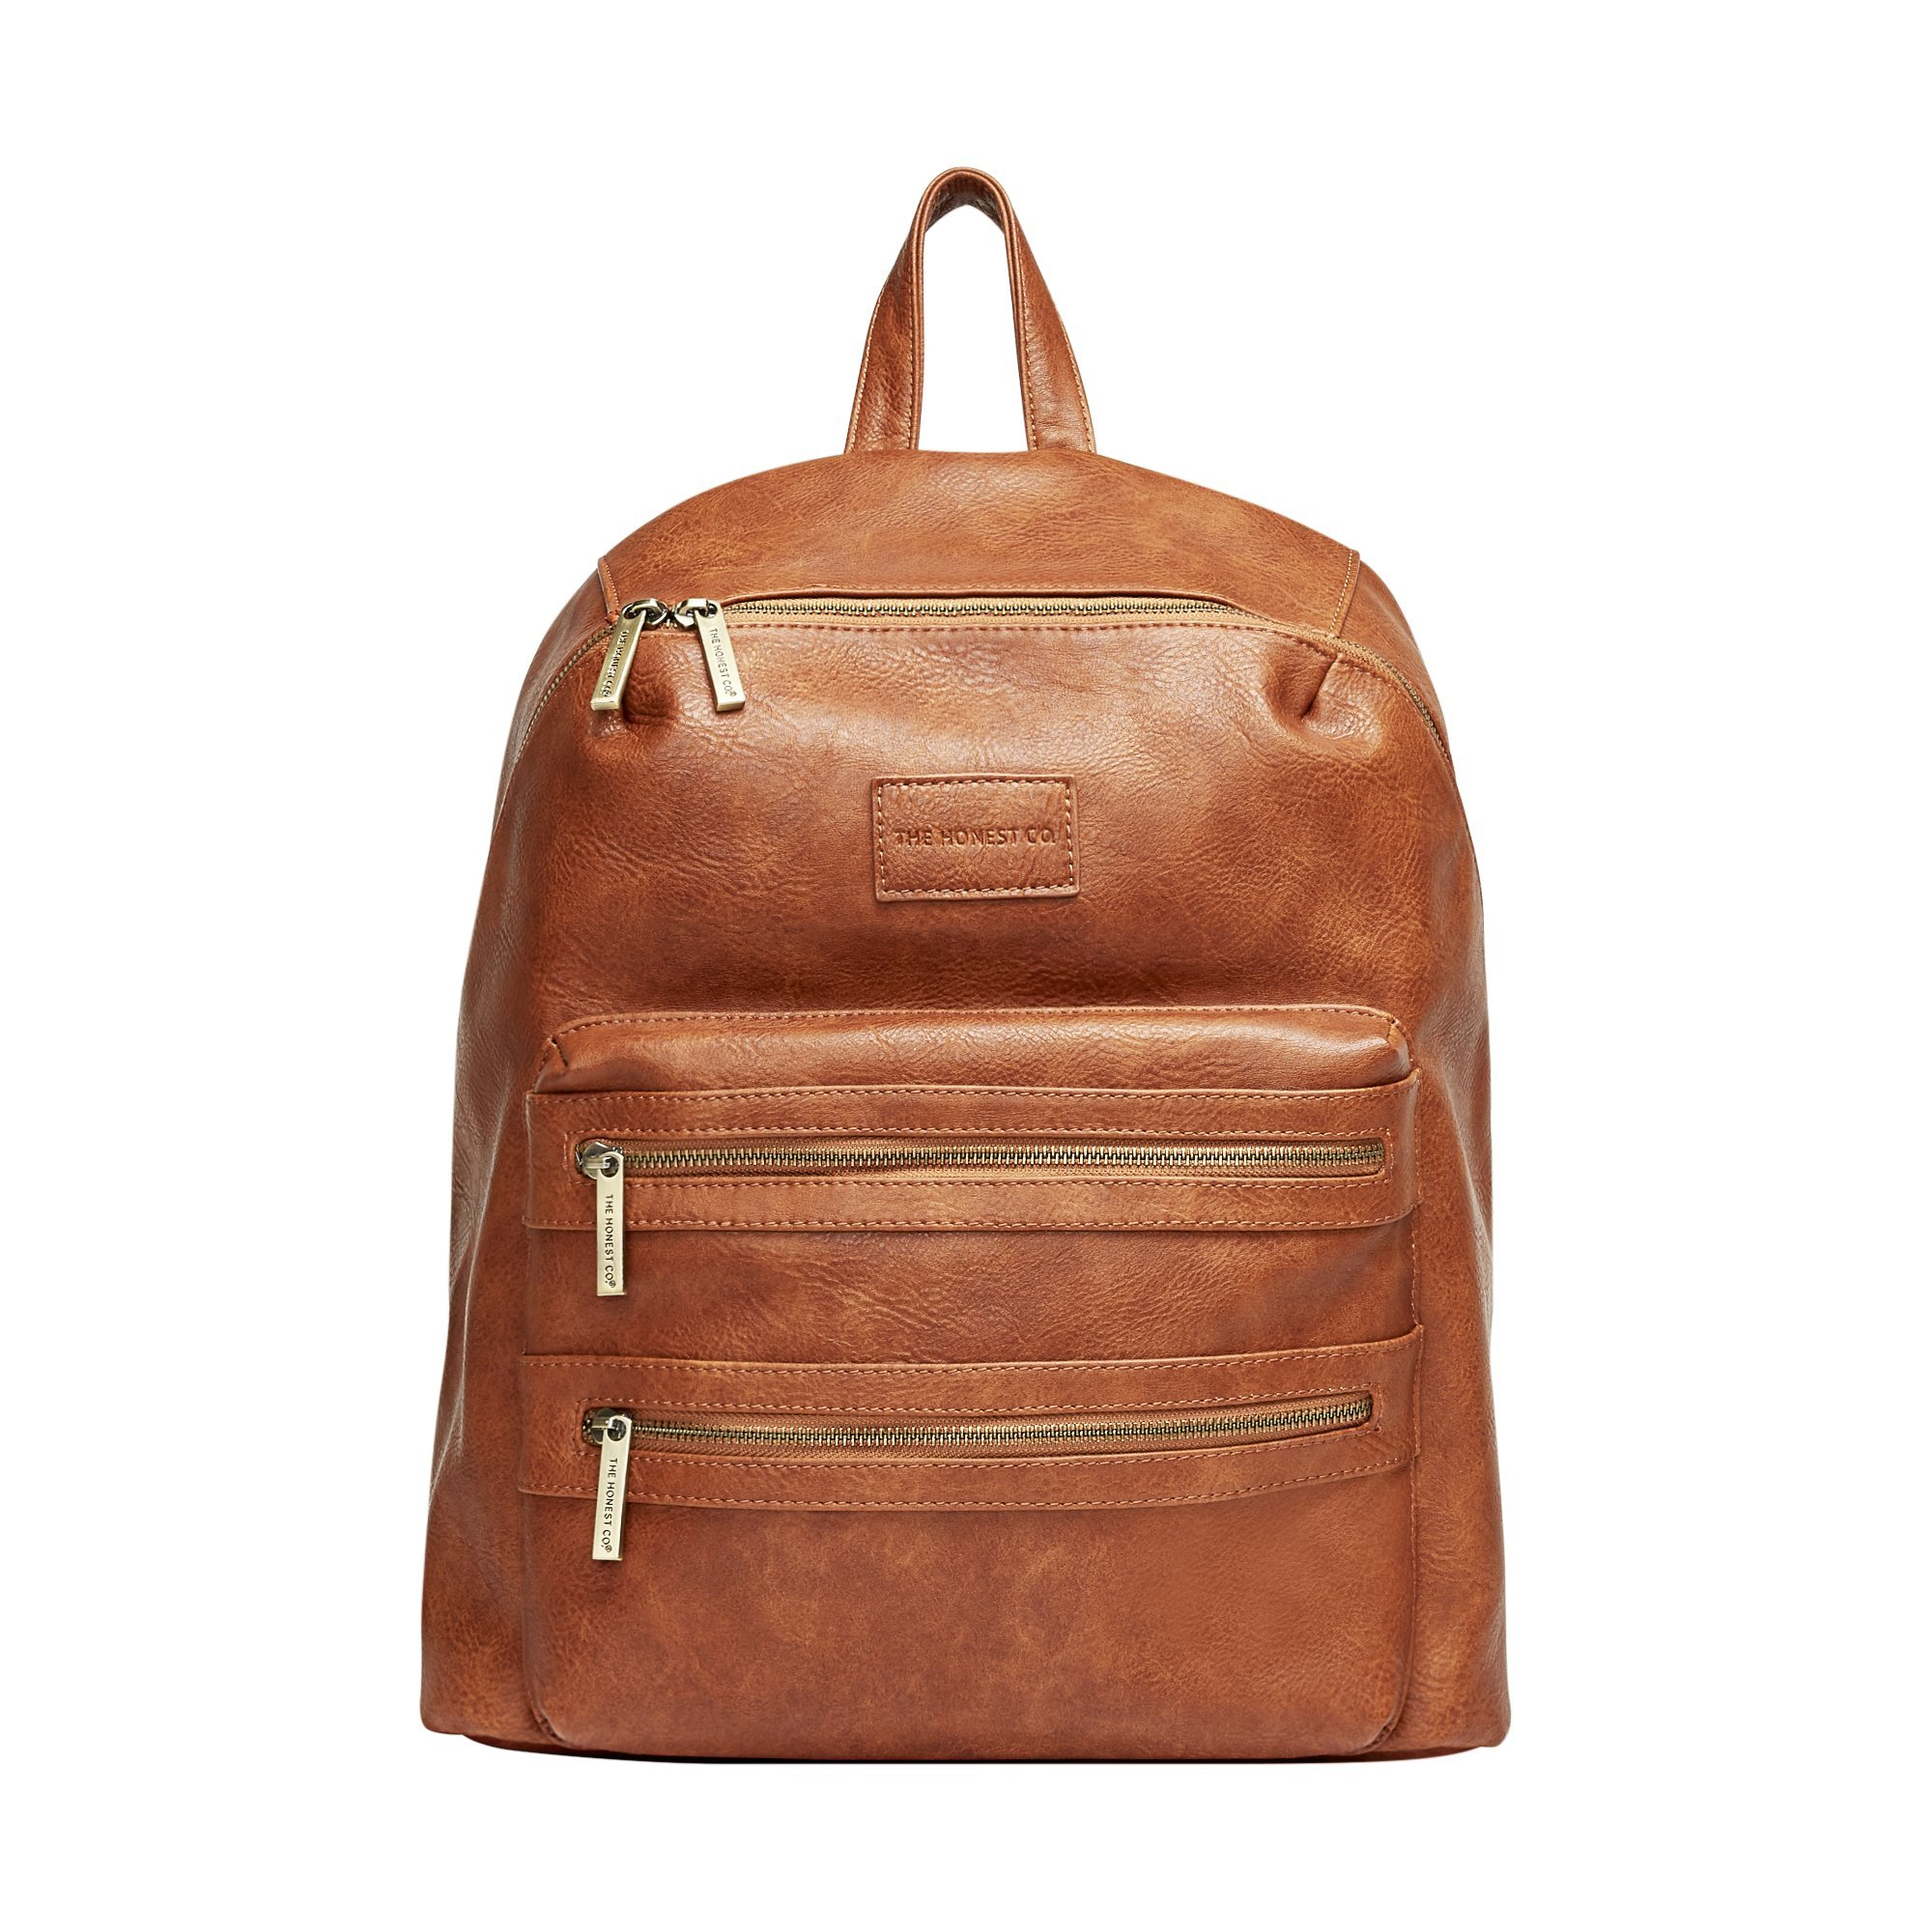 The Honest Company City Backpack, Cognac